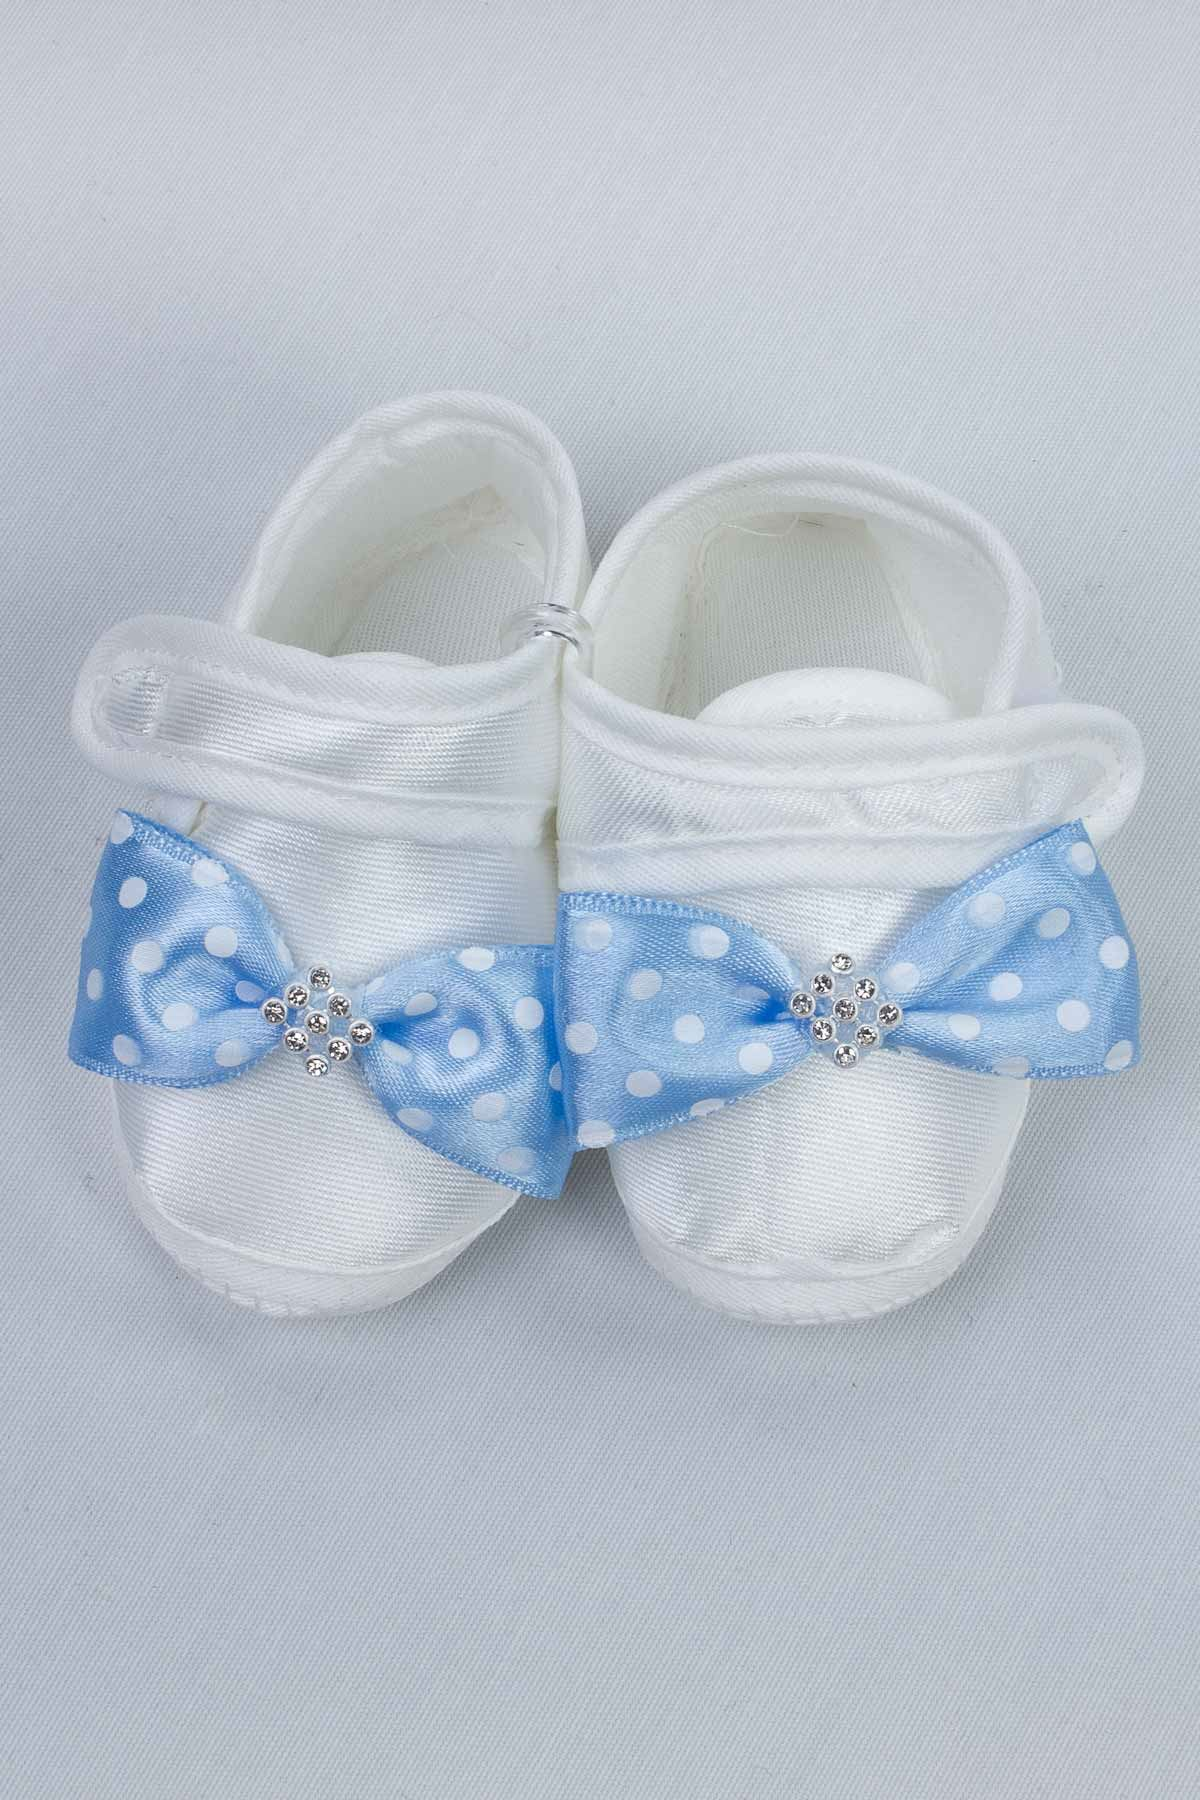 Blue Puerperal Crown Slippers and Baby Booties Hat Set